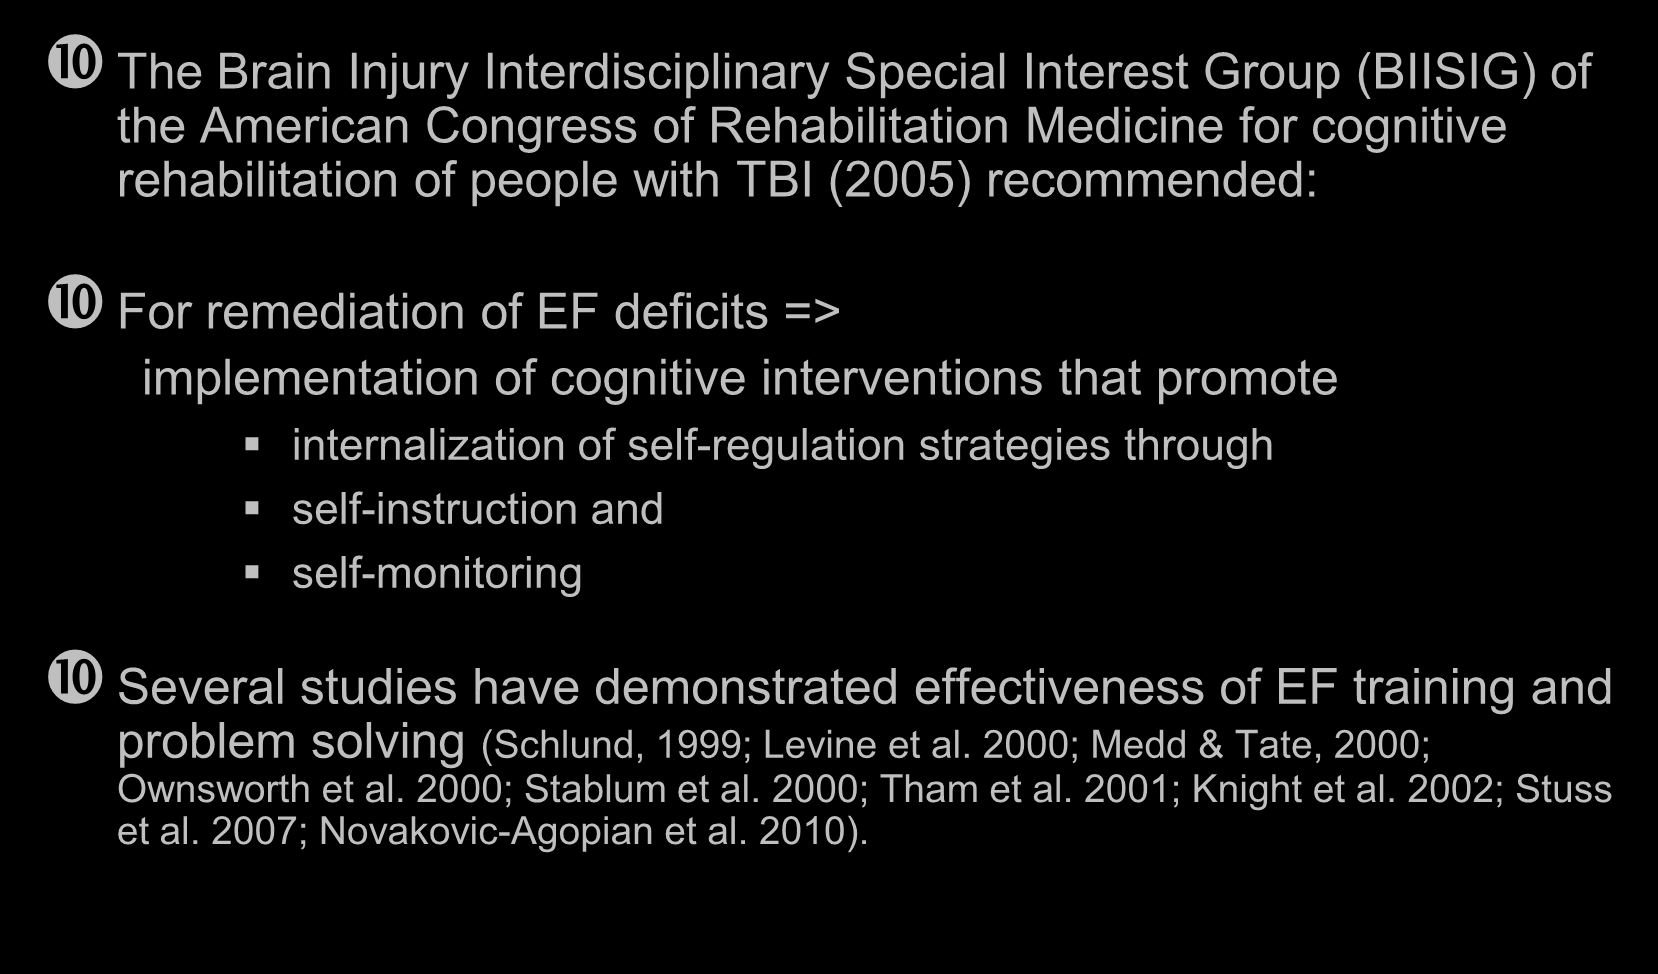 EF Rehabilitation The Brain Injury Interdisciplinary Special Interest Group (BIISIG) of the American Congress of Rehabilitation Medicine for cognitive rehabilitation of people with TBI (2005)